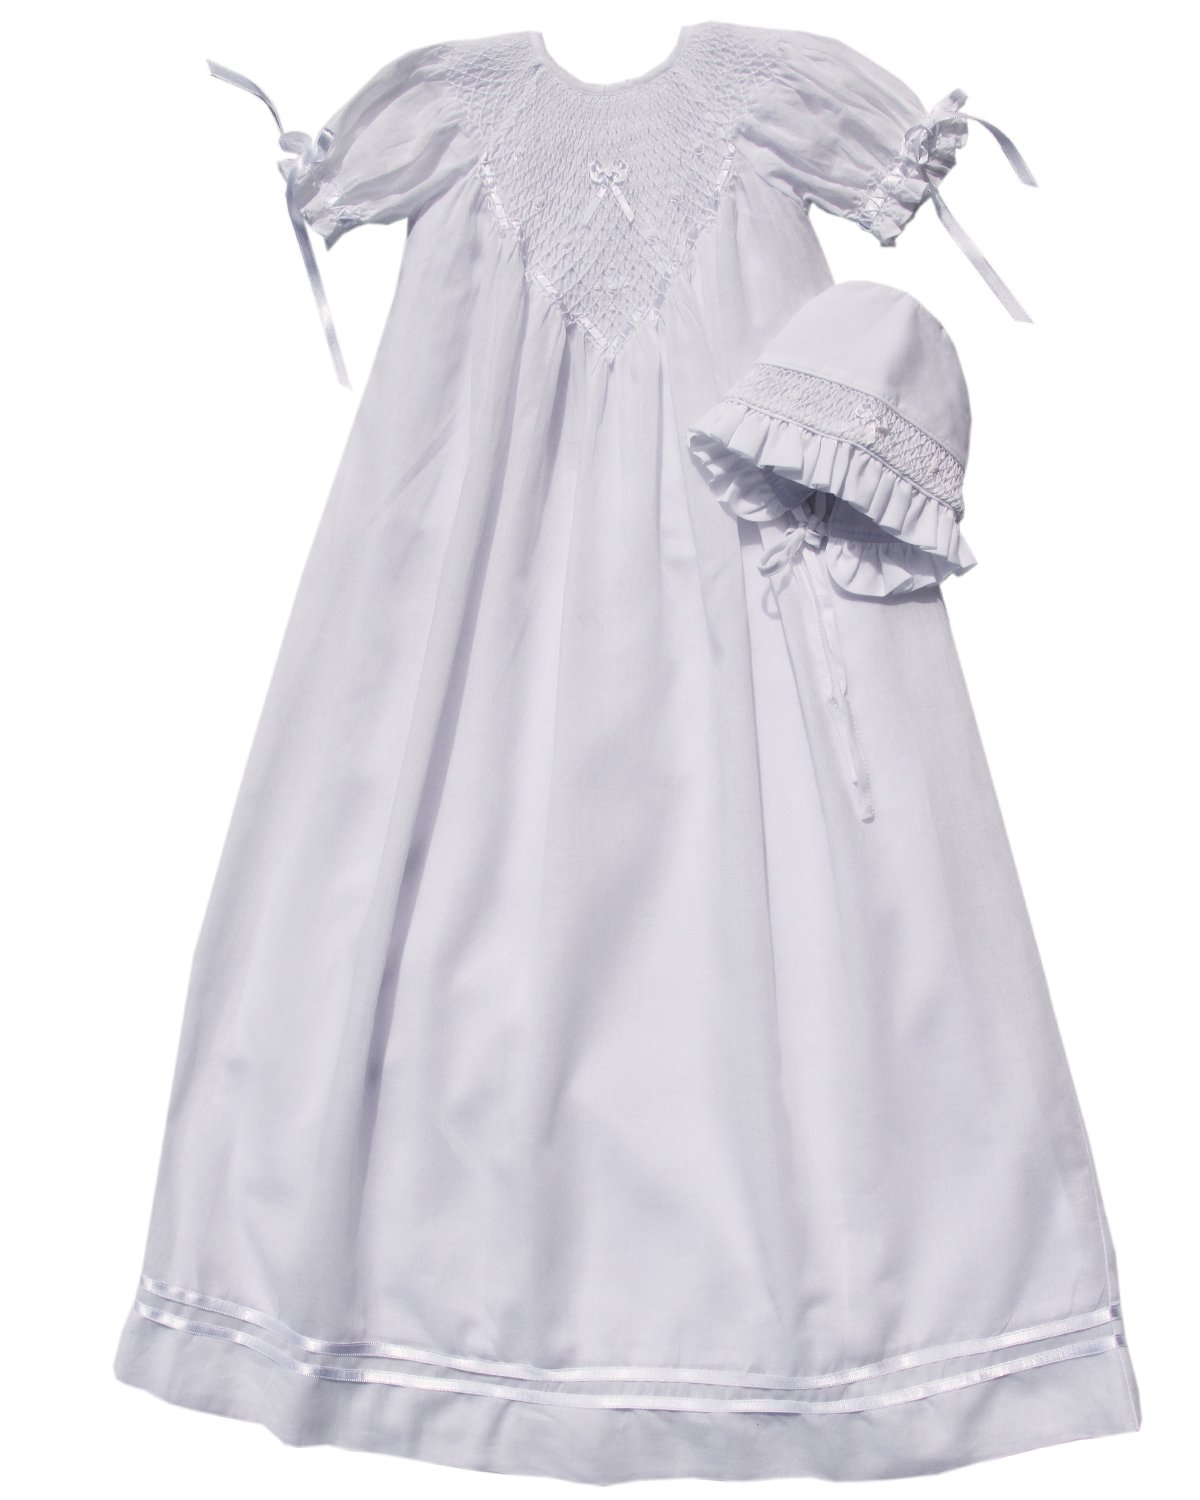 Infant Baby Girl Christening Baptism Gown with Hand Smocking Ribbons and Bonnet